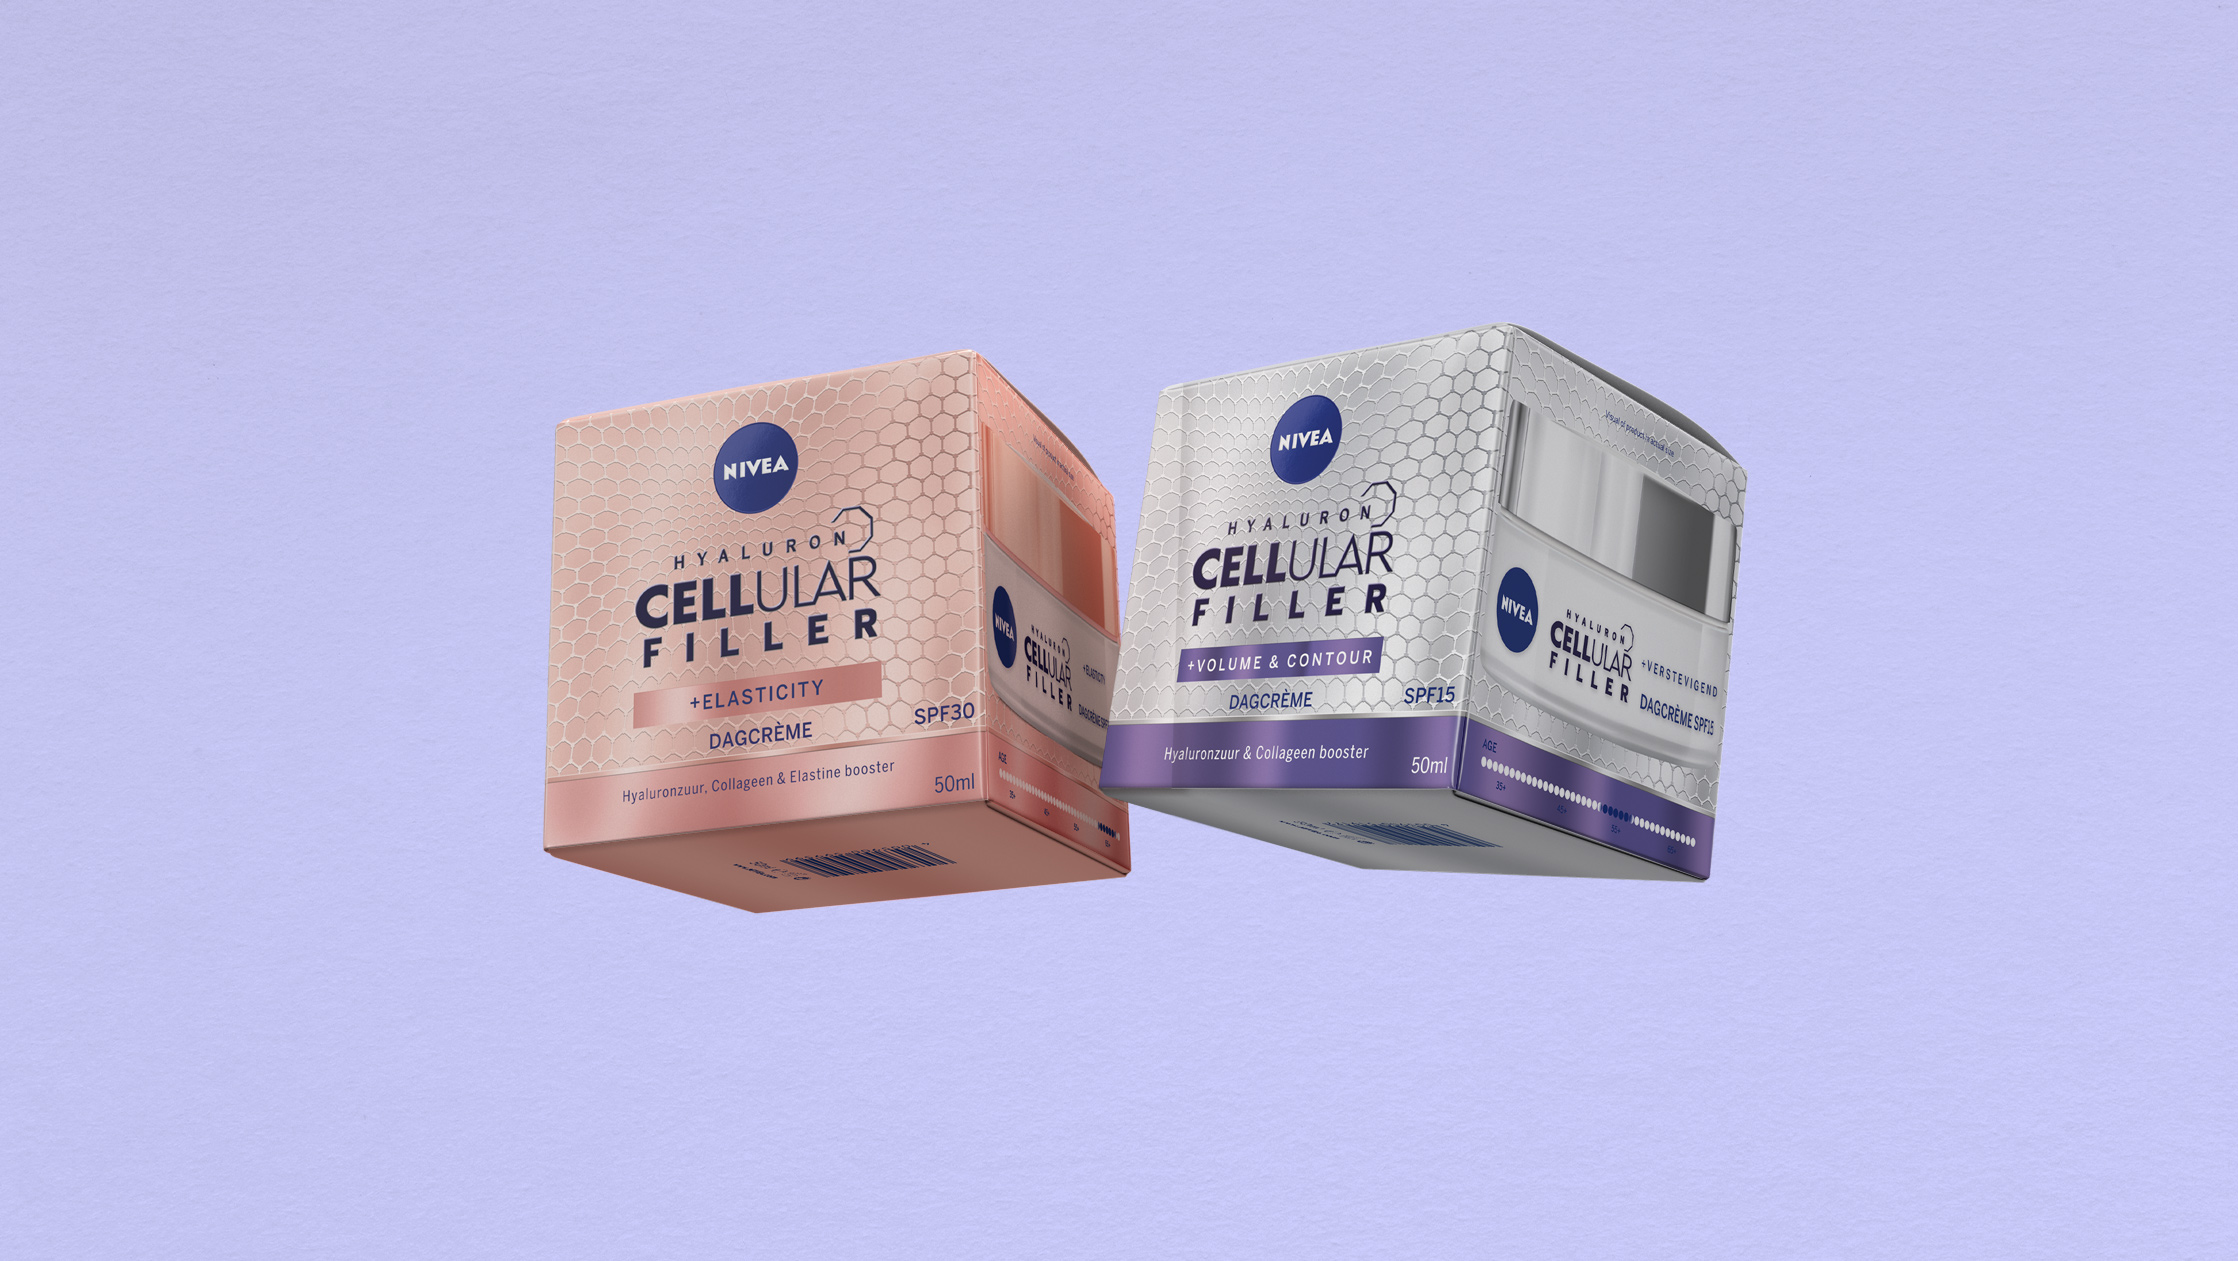 Nivea Packaging Design